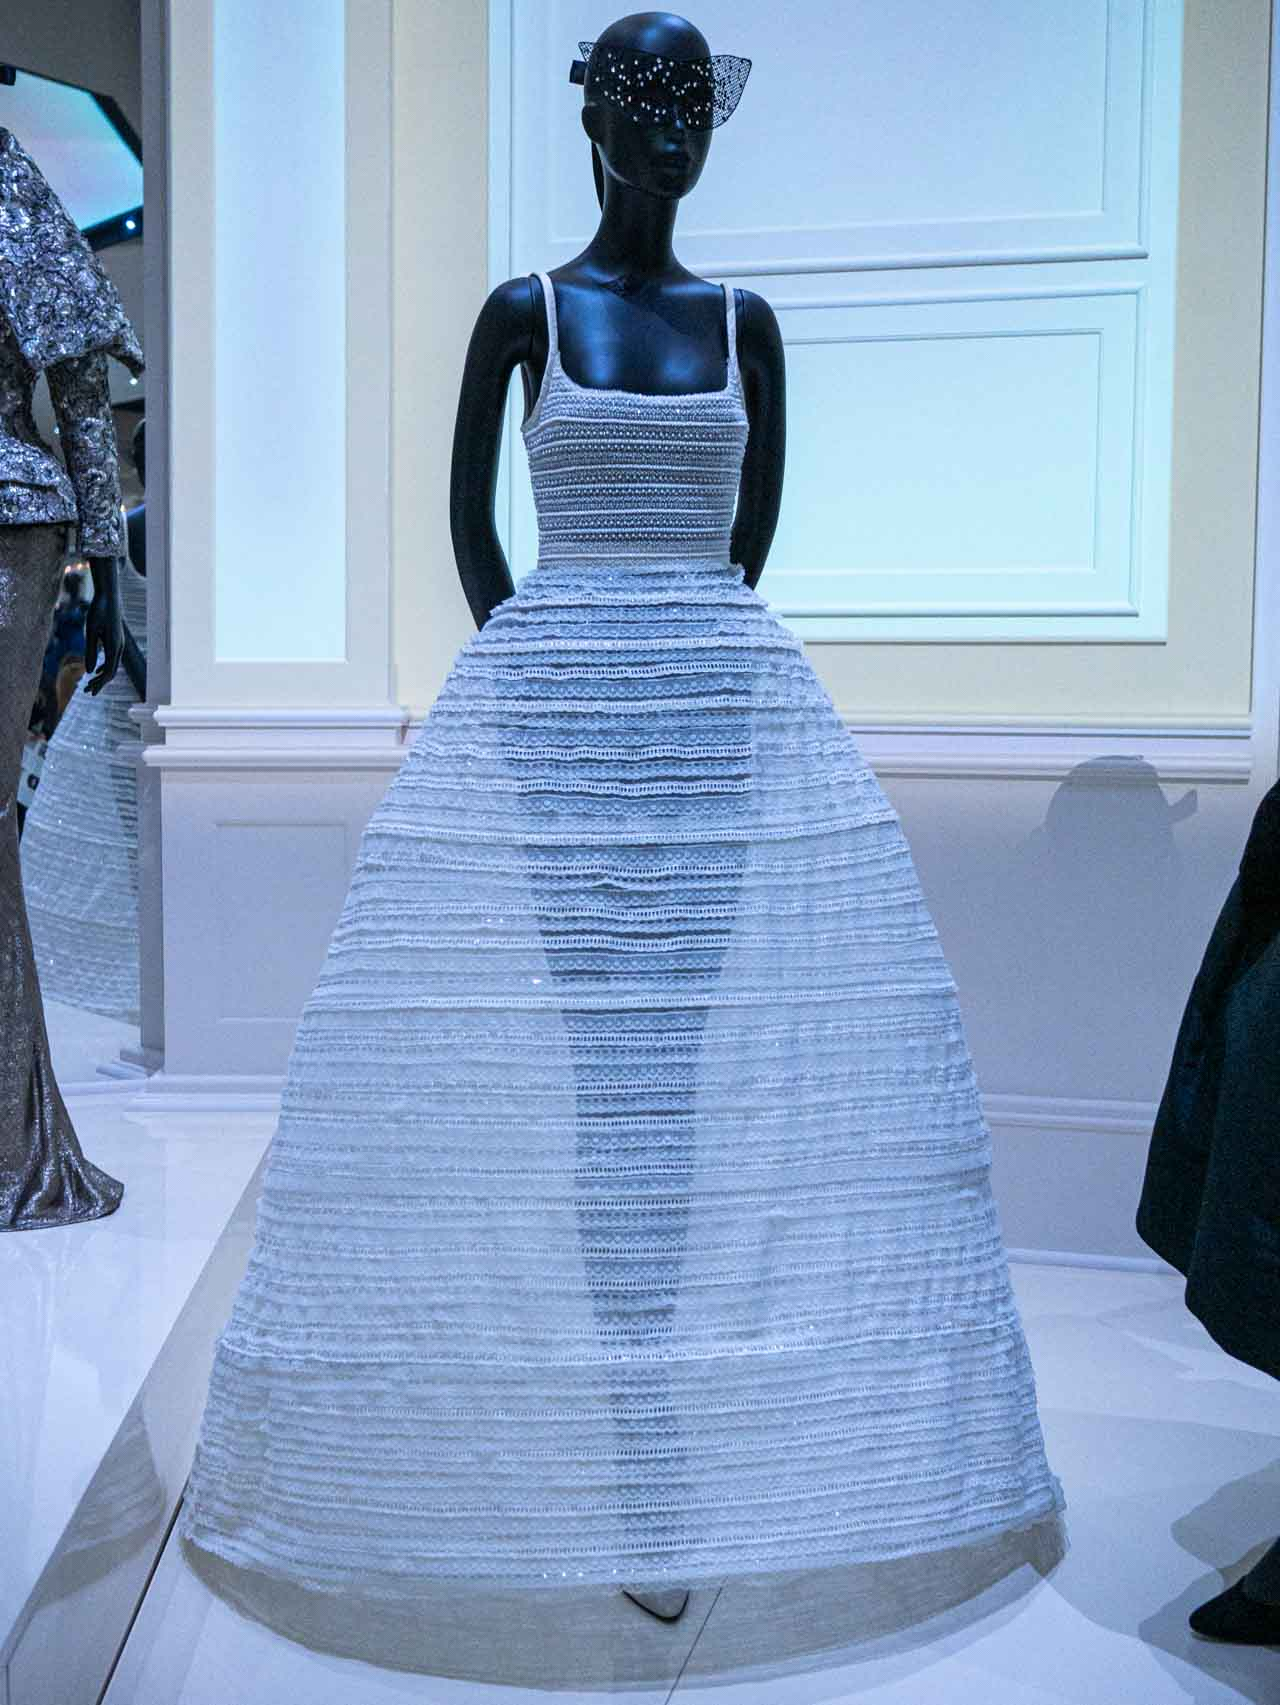 Christian Dior by Gianfranco Ferré. Haute Couture, Spring-Summer 1995. Taken at the V&A exhibition © The Cutting Class, 2019.